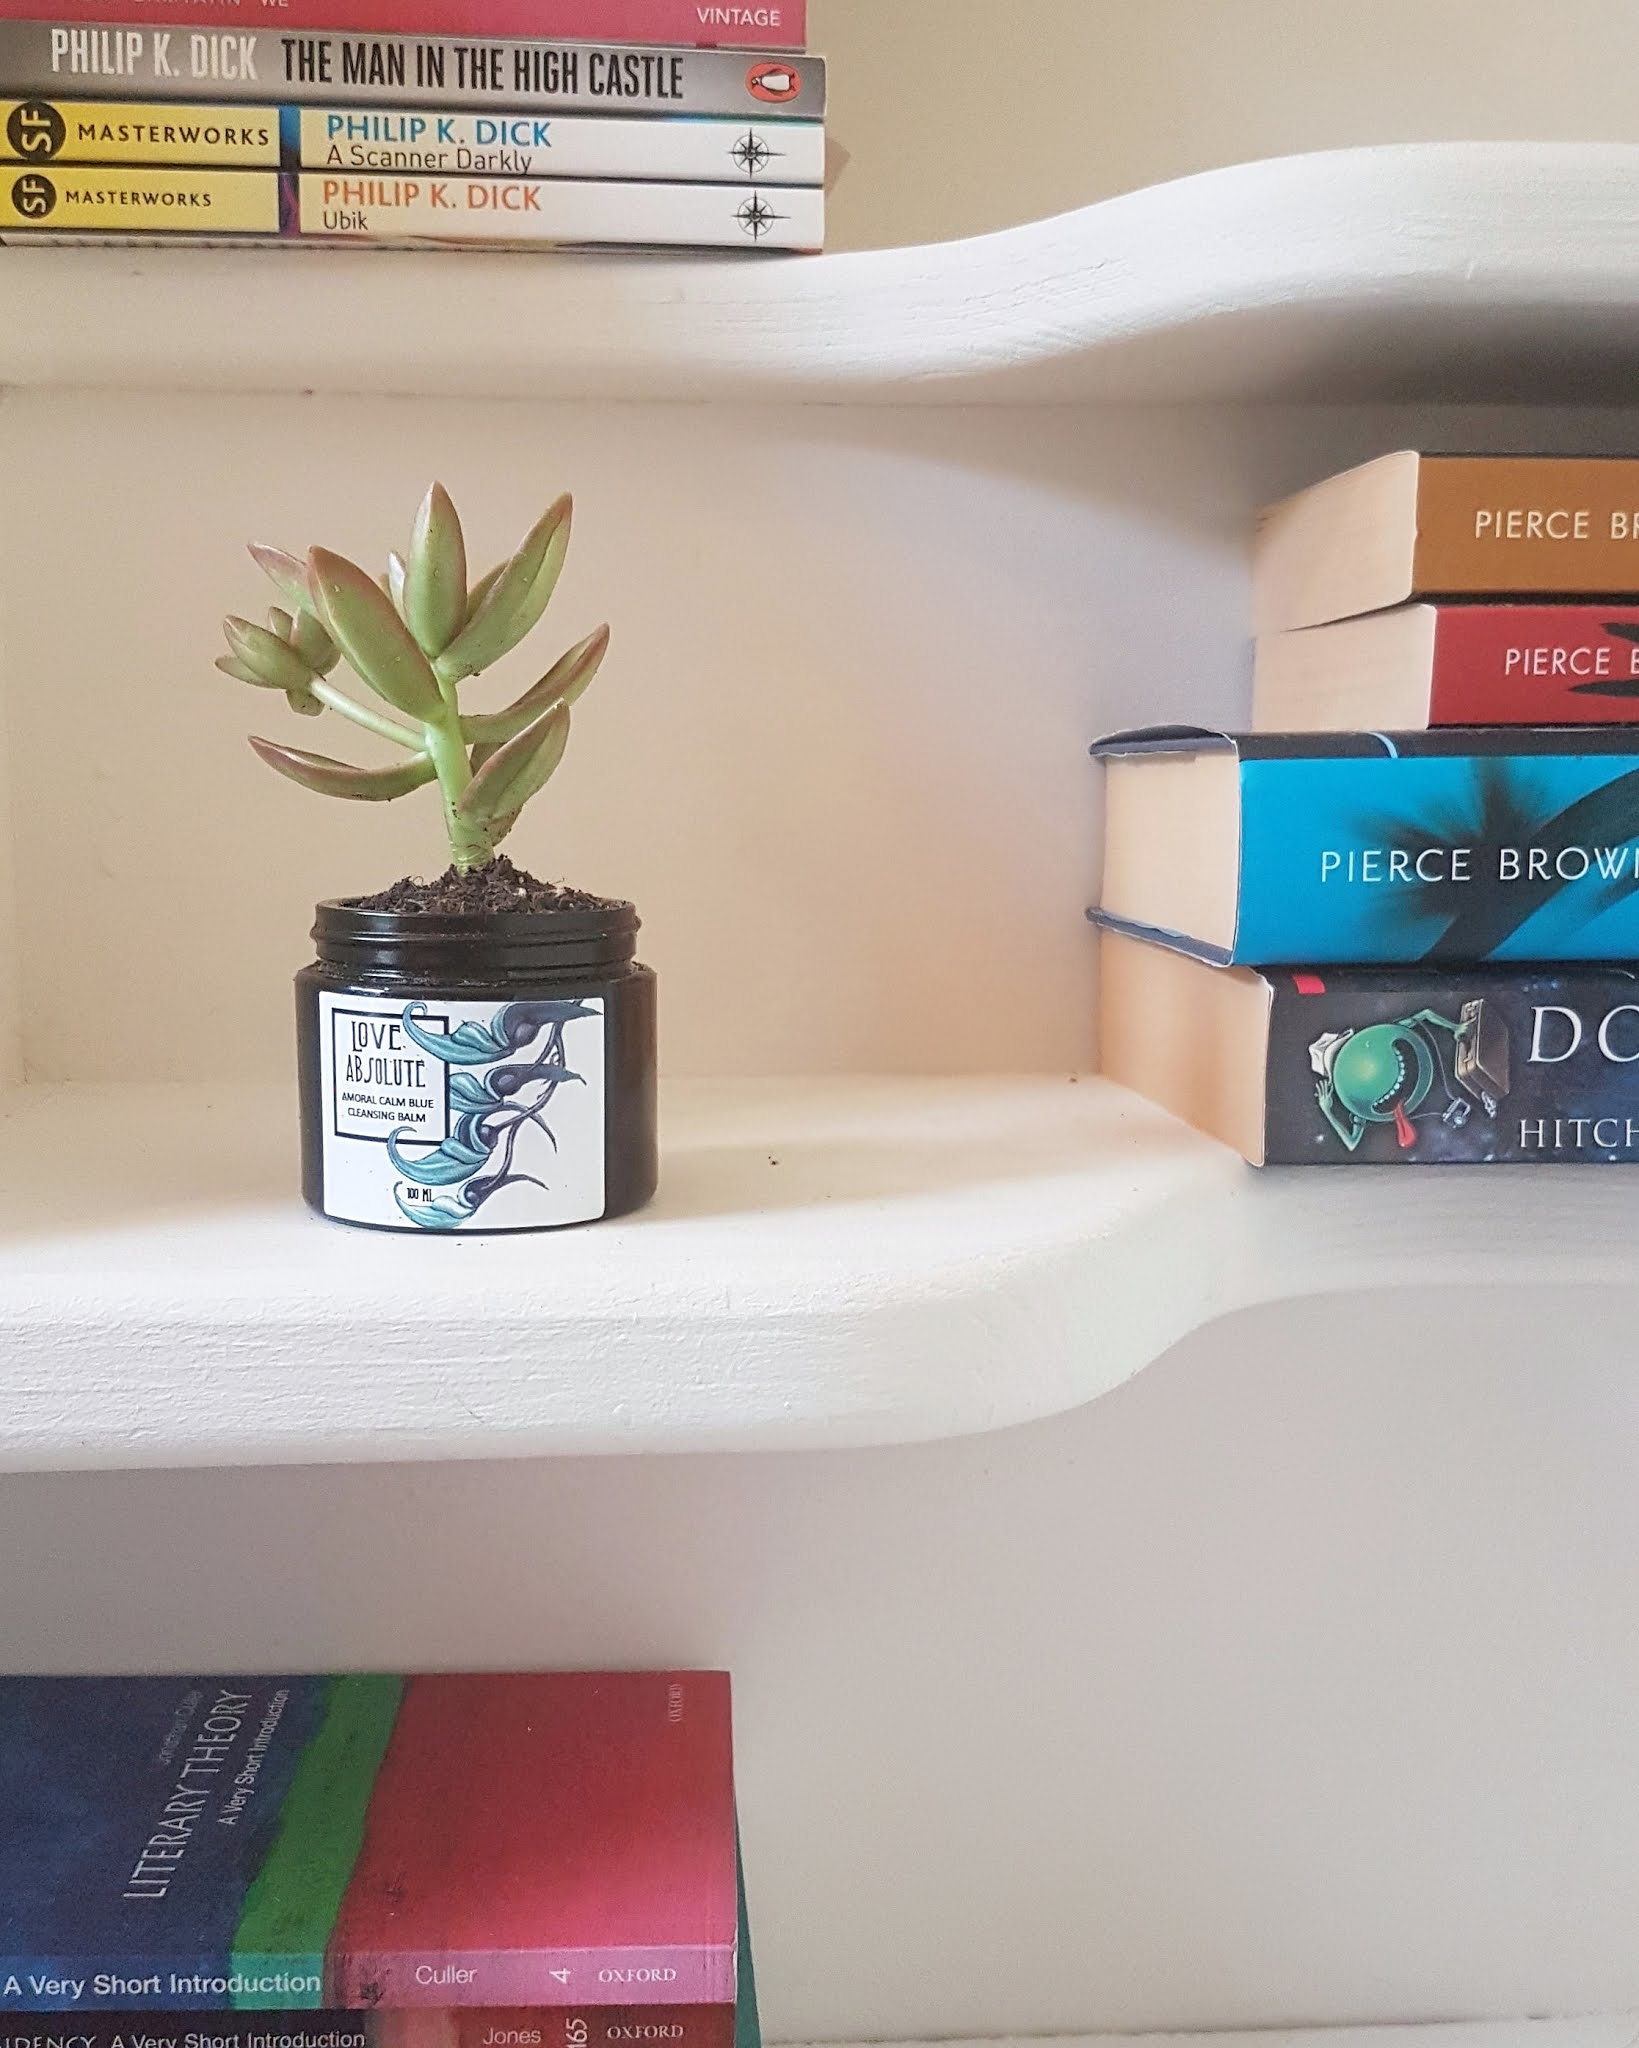 Love Absolute Blue Cleanser upcycled into a baby plant pot